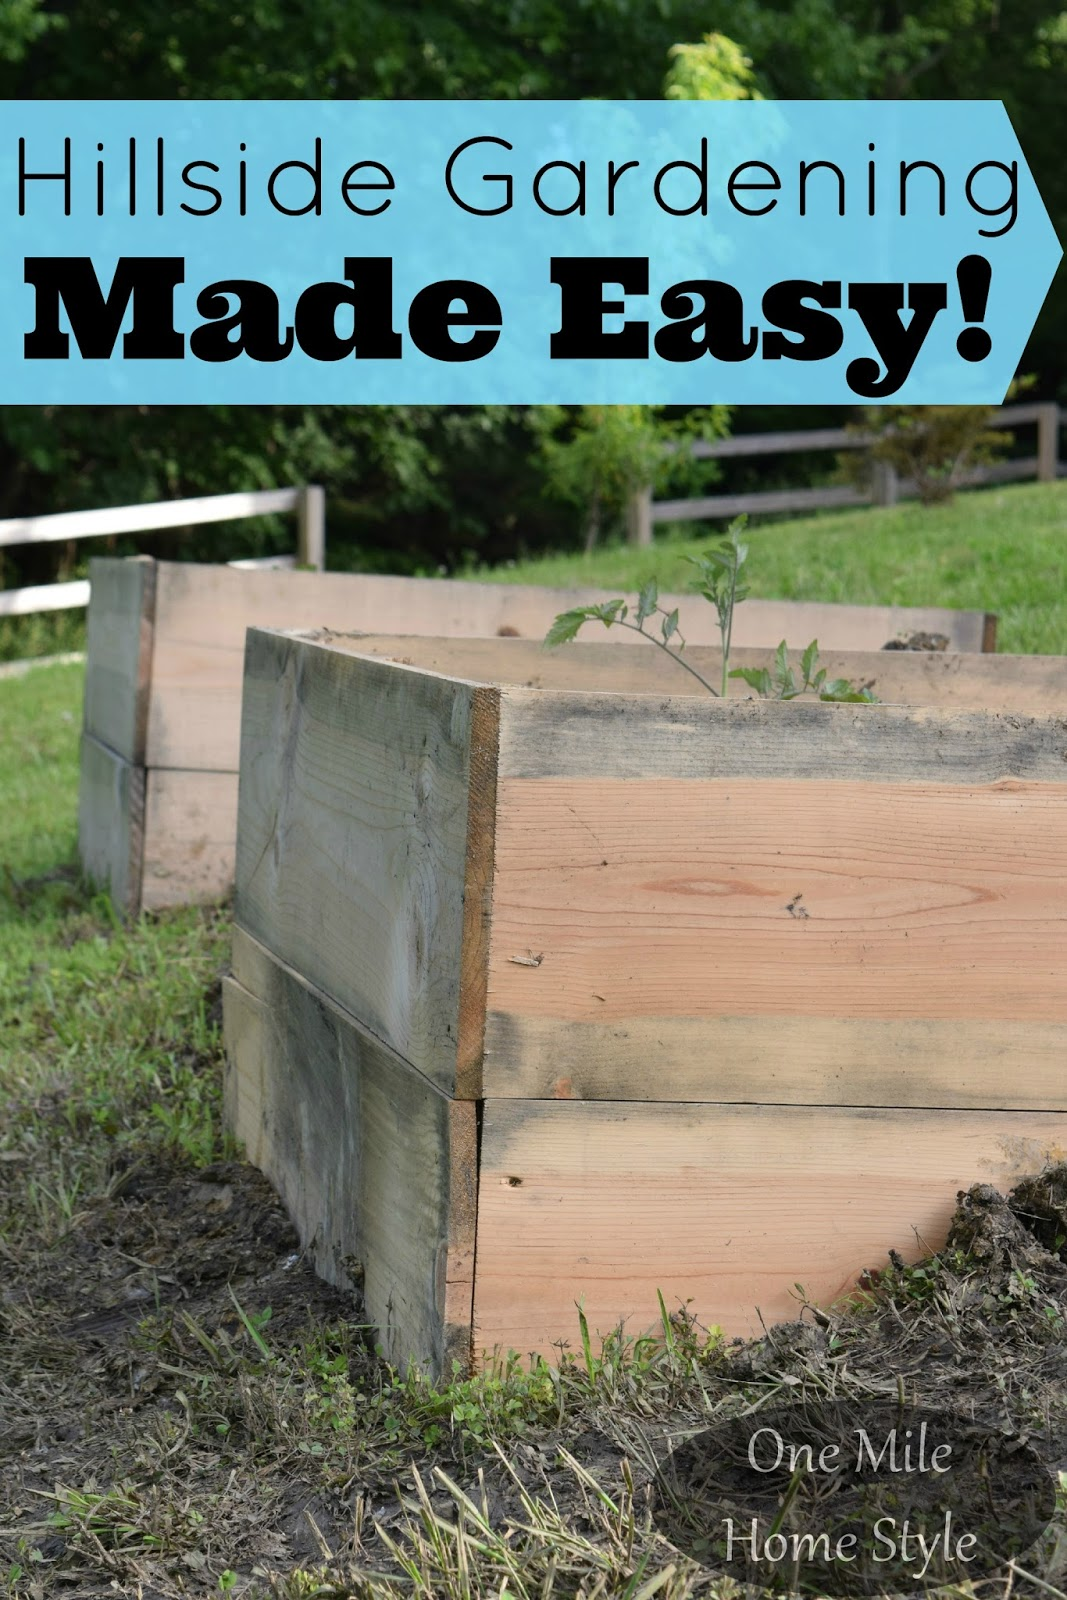 Hillside Gardening Made Easy